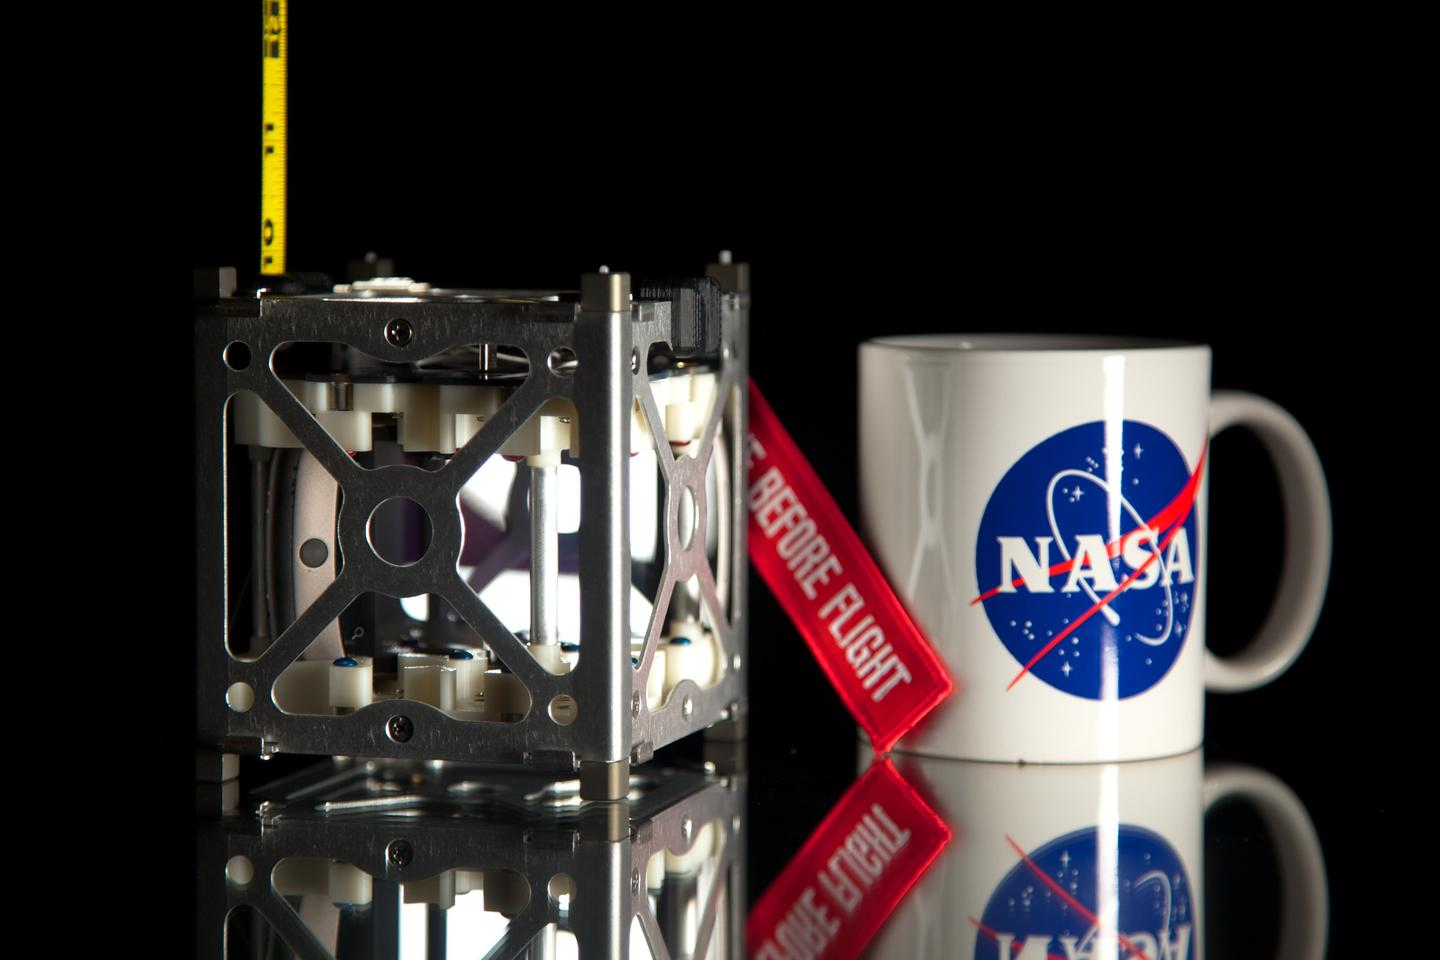 The PhoneSats aren't much bigger than a coffee mug (Image: NASA)